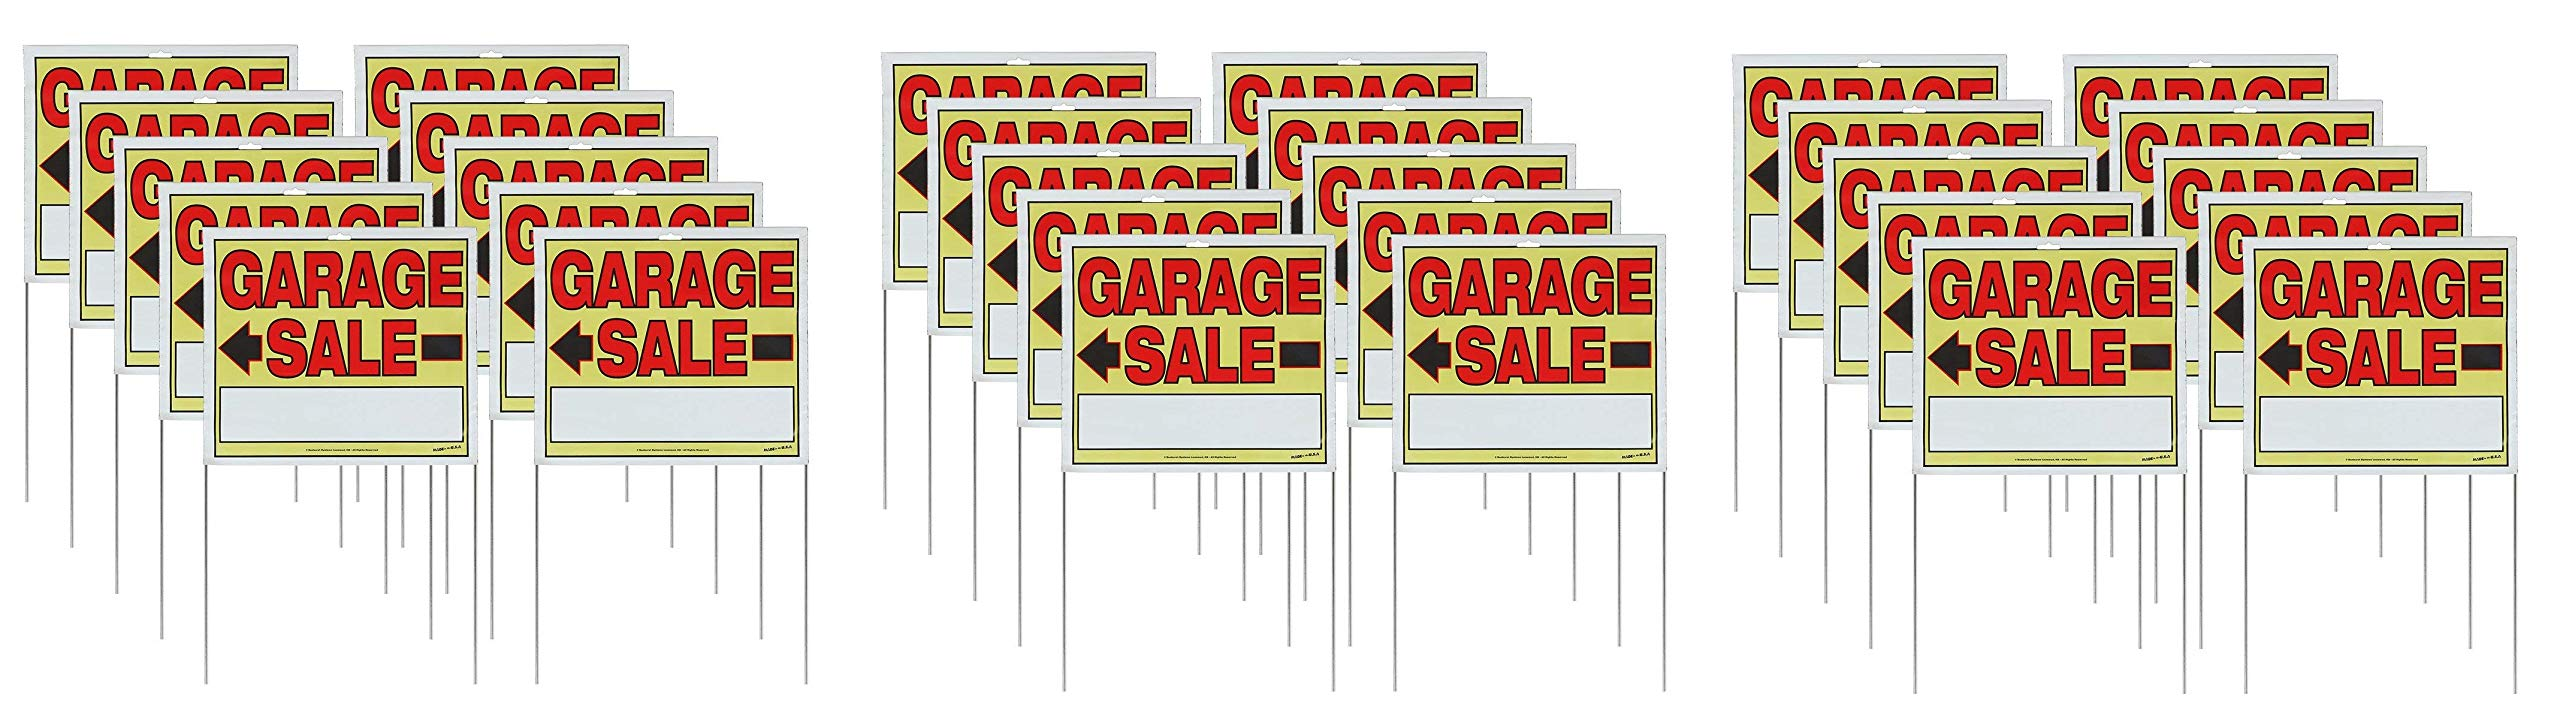 Sunburst Systems 22'' H x 14'' W Double-Sided Garage Sale Signs with Wire U-Stakes, 10 Pack (Thrее Рack)